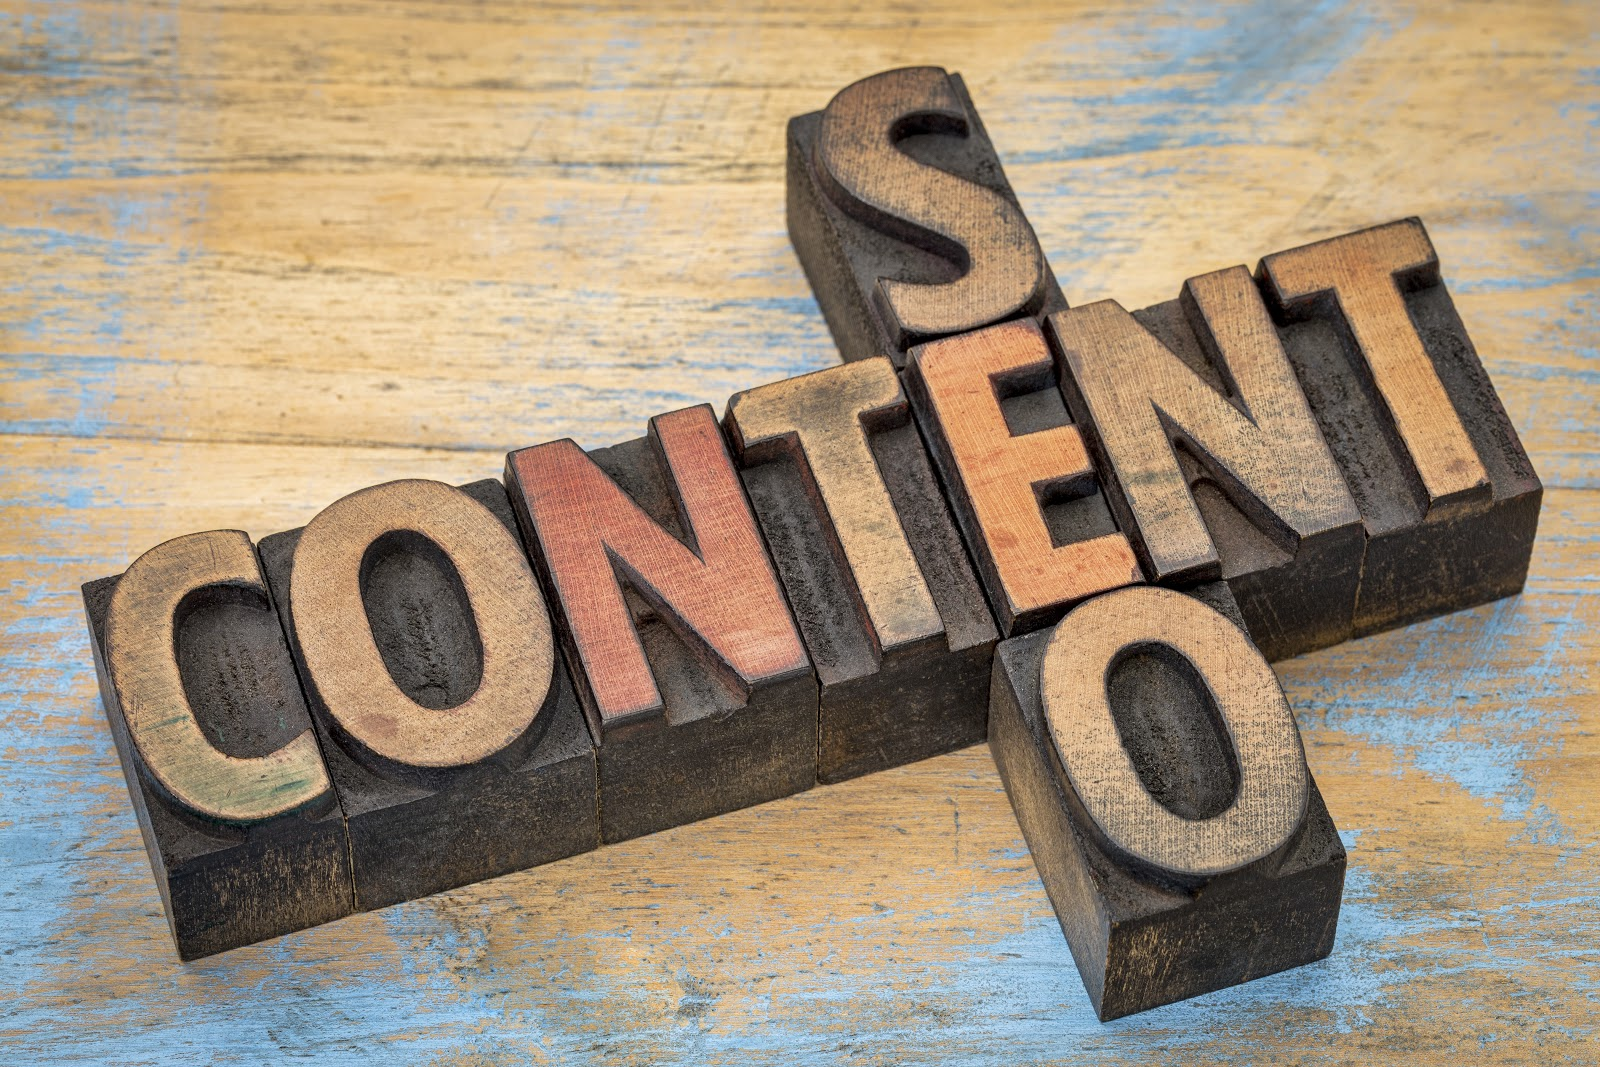 Content and SEO are intertwined together like a crossword puzzle that benefits both fields.